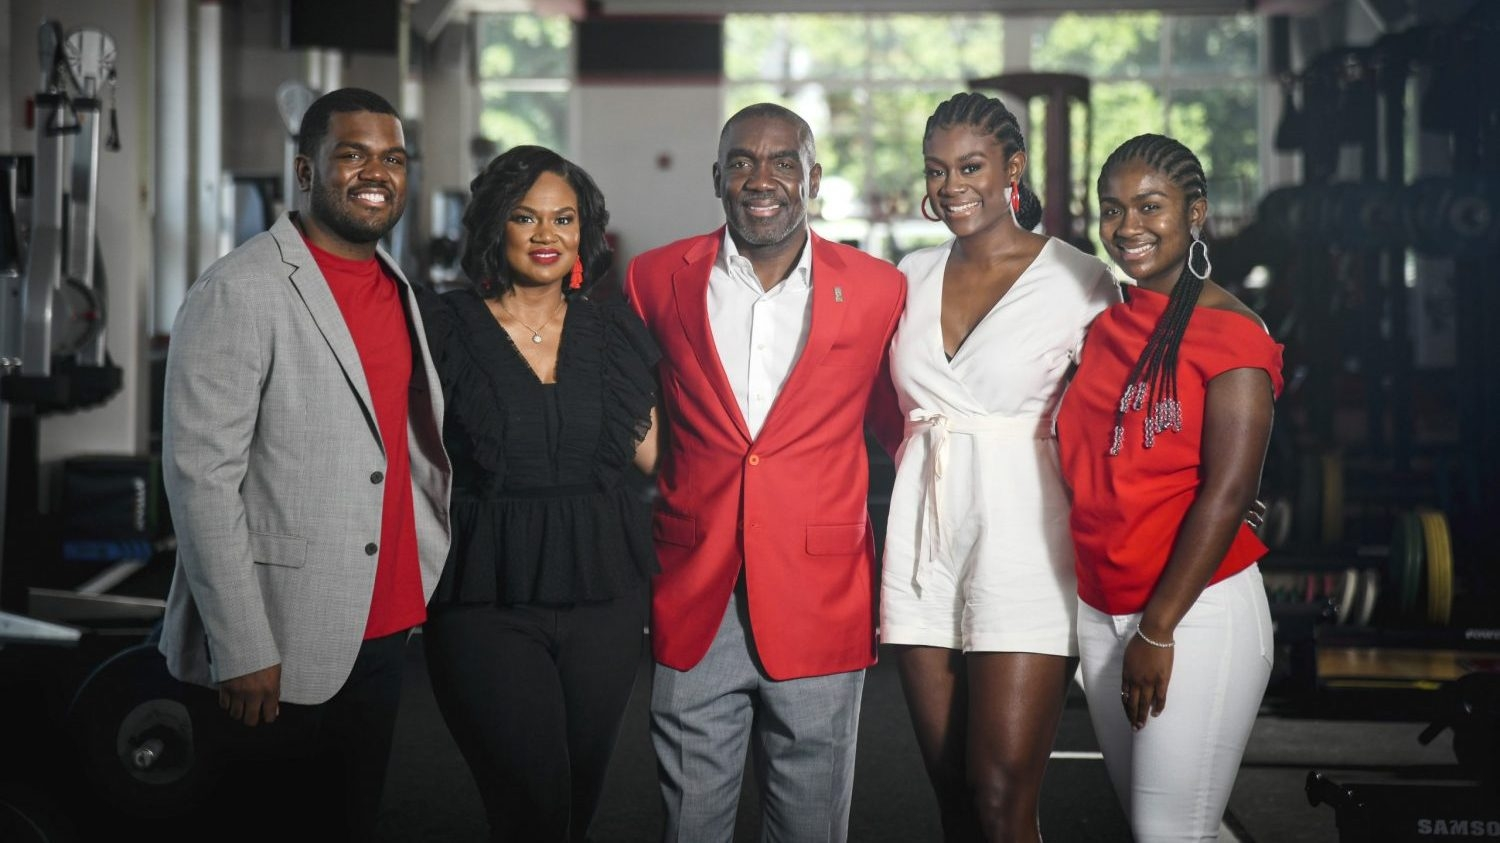 the Washington family posed together at Vaughn Towers